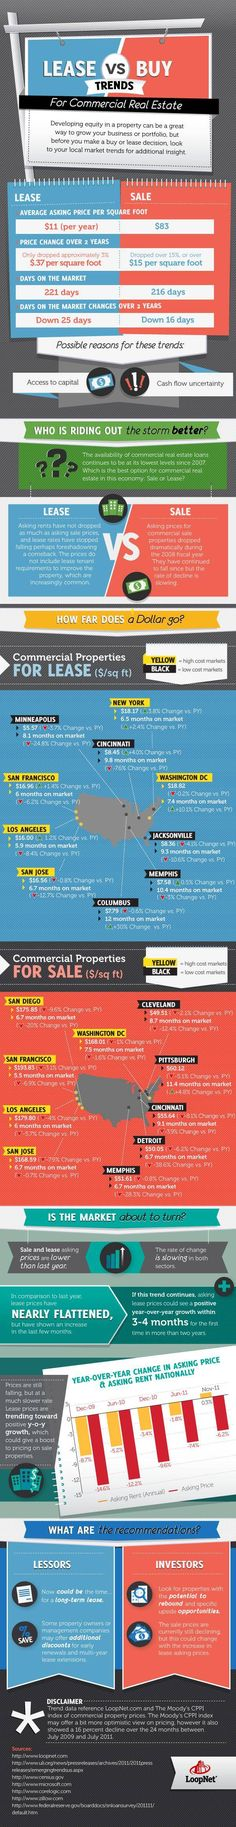 Lease vs Buy Trends for Commercial Real Estate (infographic)